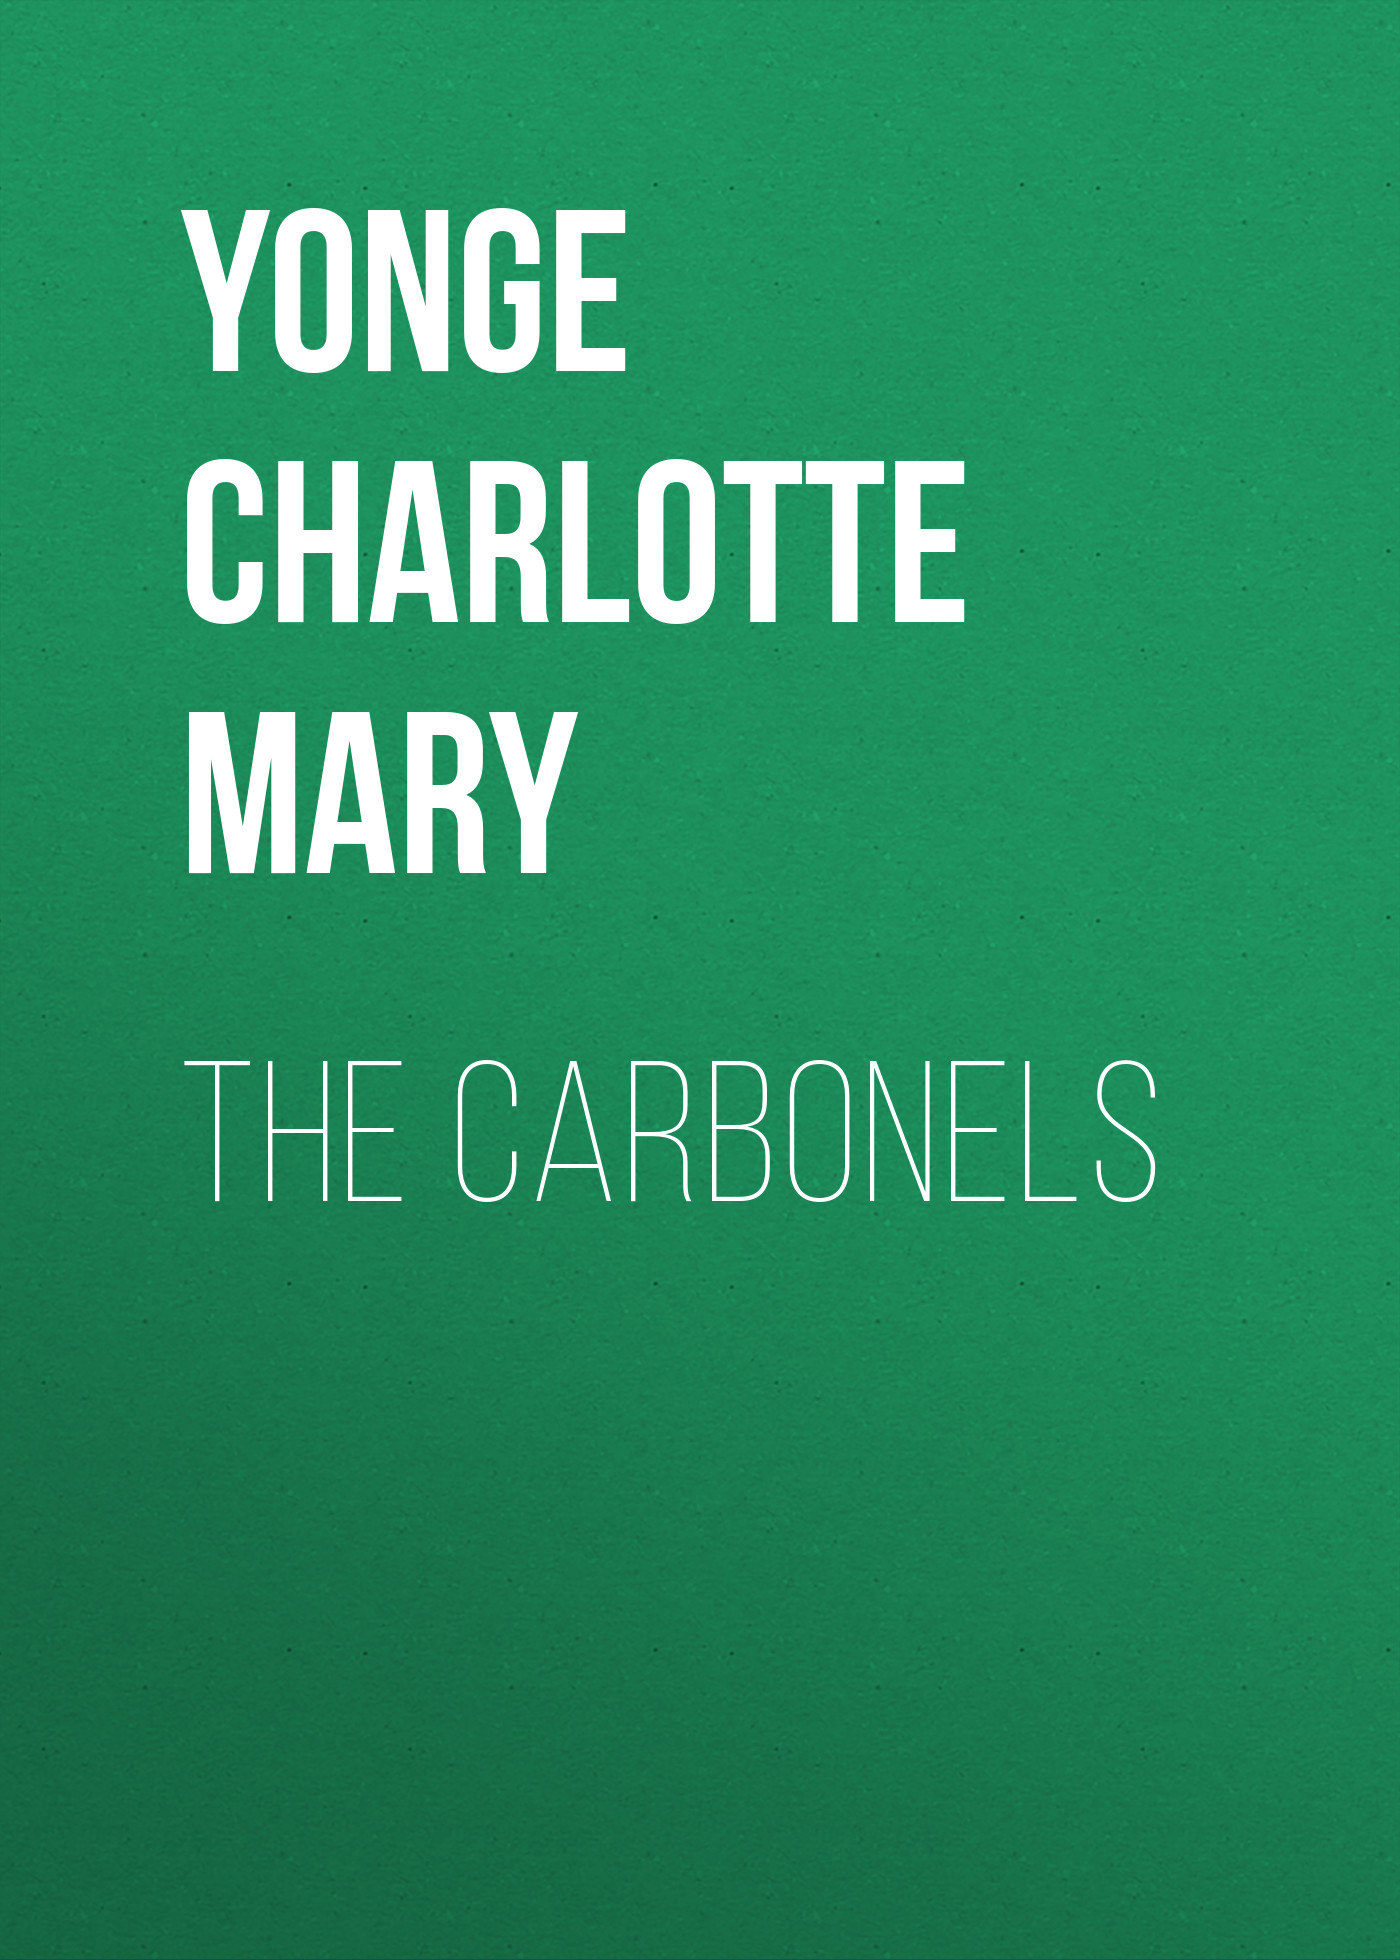 лучшая цена Yonge Charlotte Mary The Carbonels